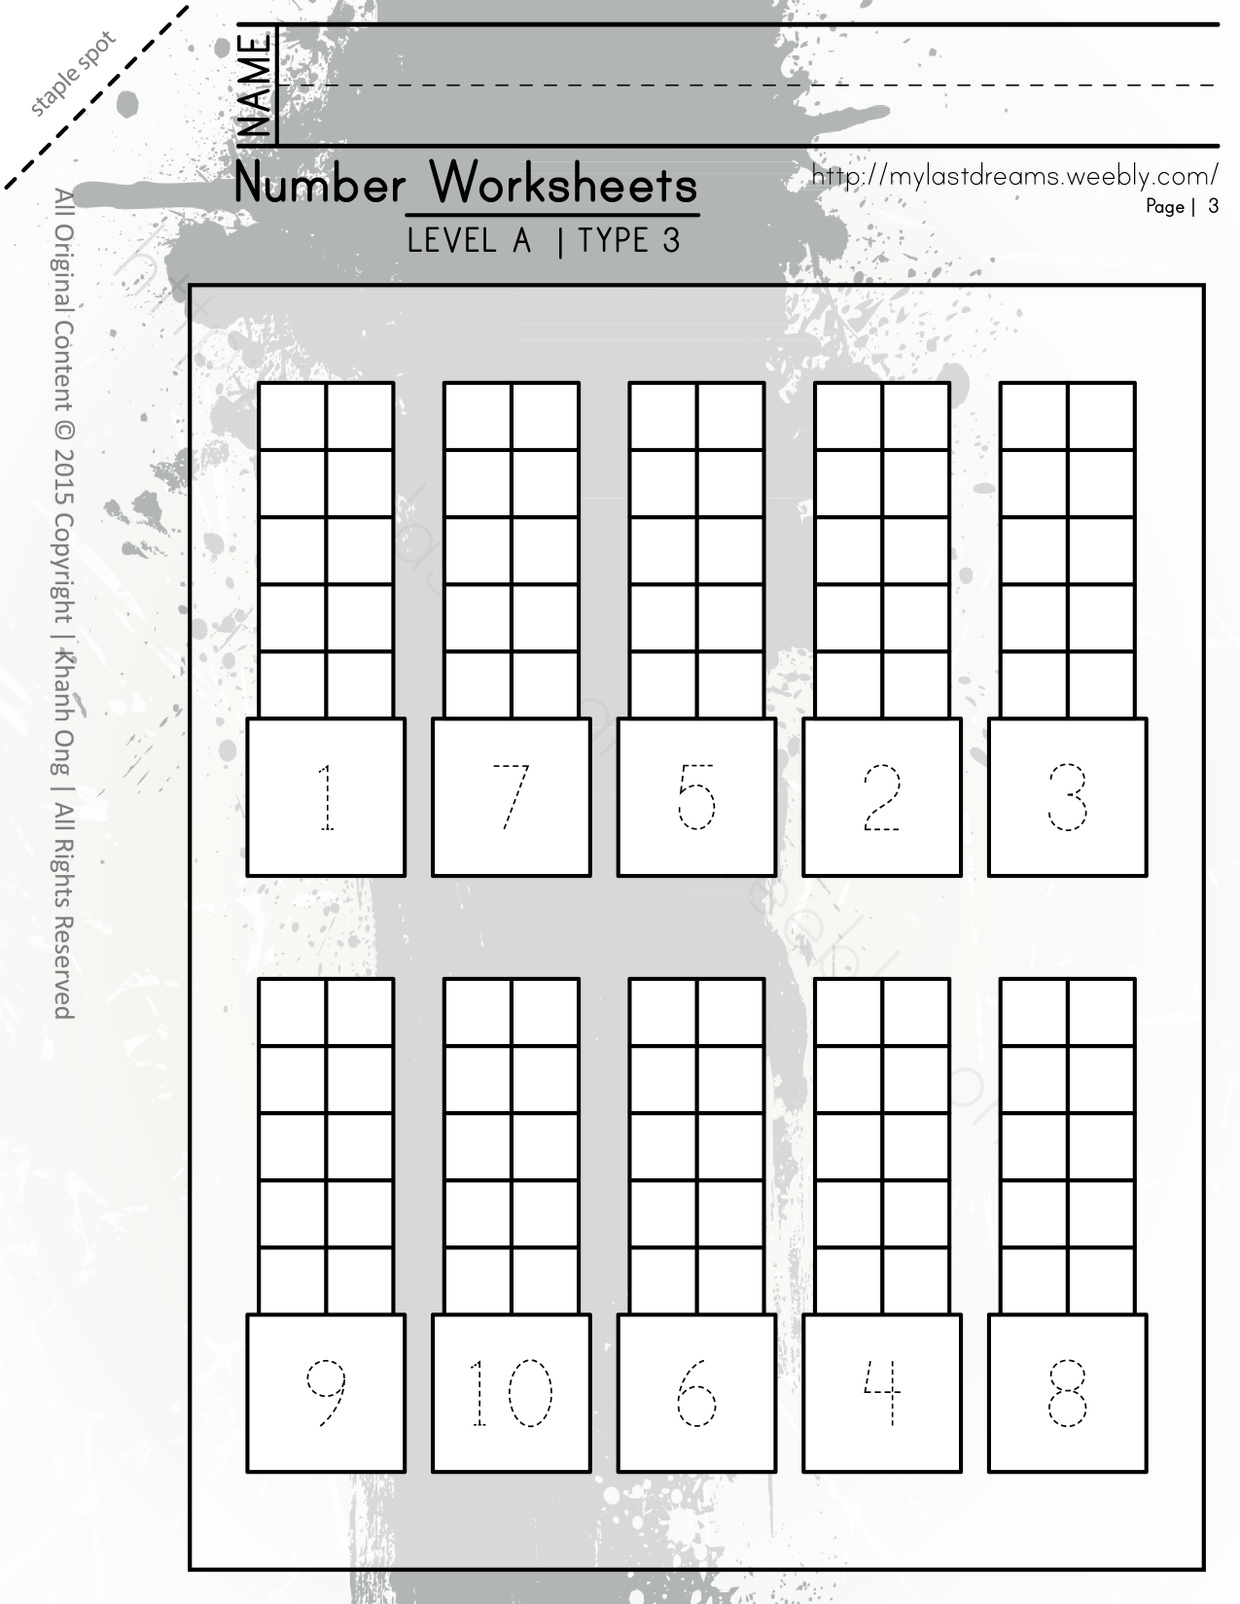 MLD - Basic Numbers Worksheets - Part 1 - Letter Sized